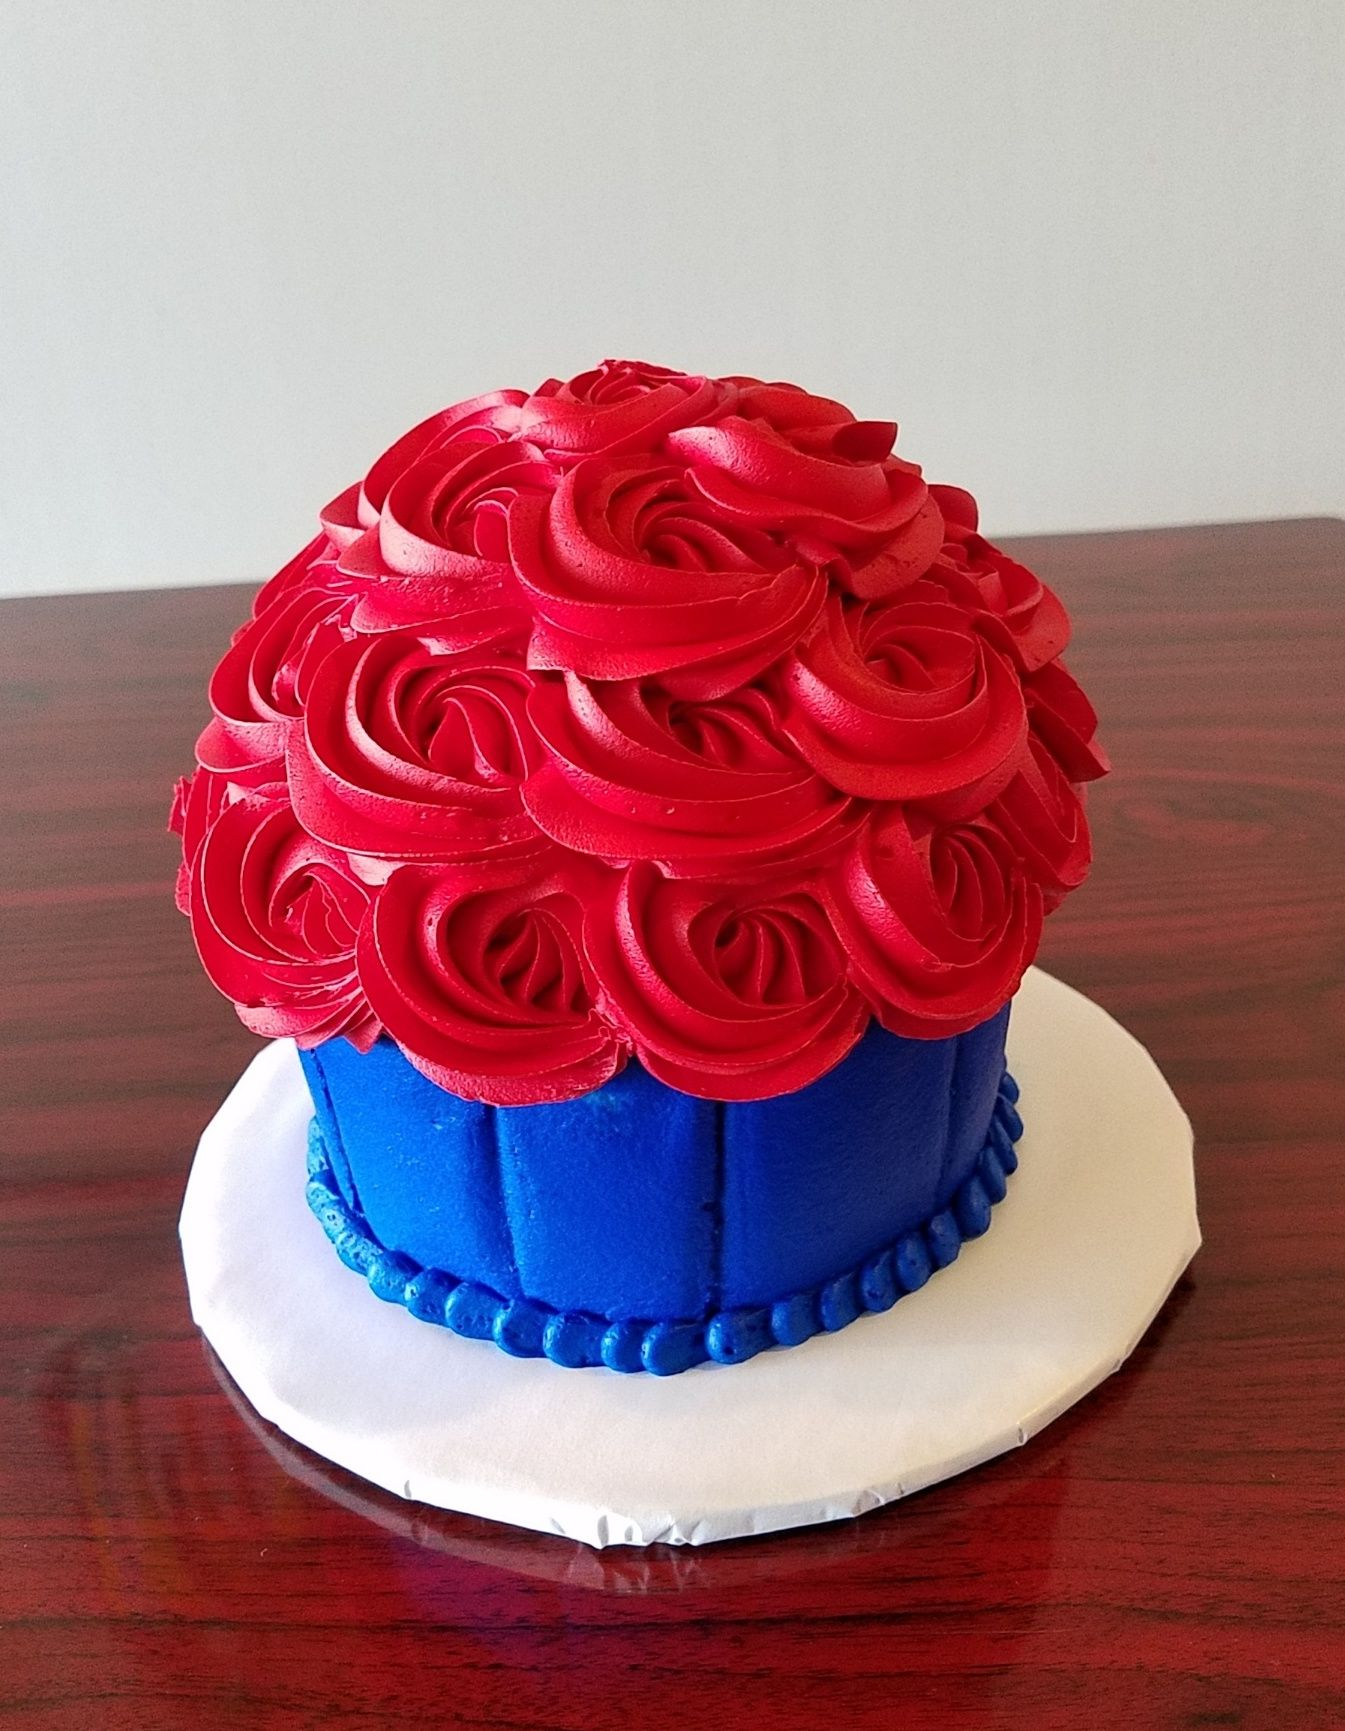 Giant Red Rosette Cupcake Adrienne Co Bakery Birthday Cakes